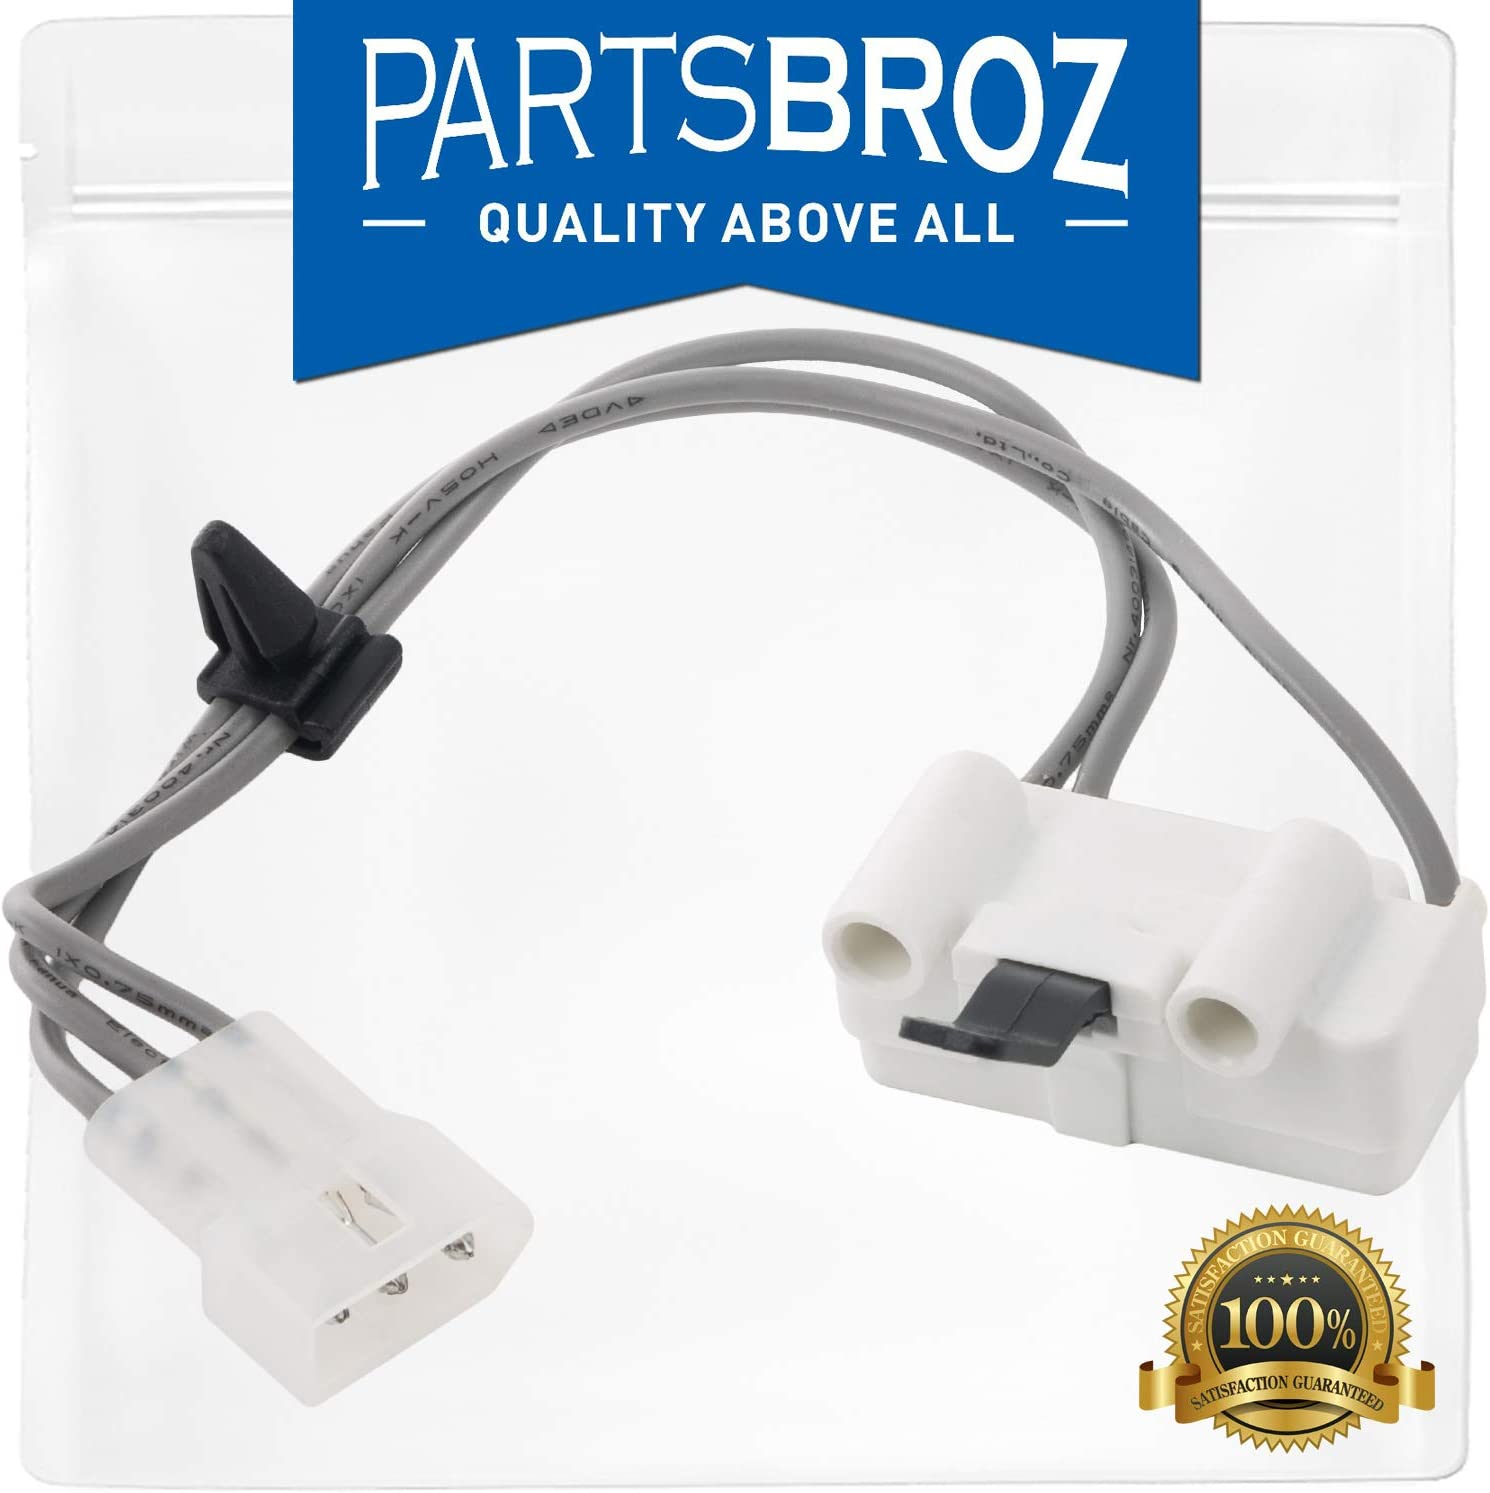 3406105 Door Switch Assembly by PartsBroz - Compatible with Whirlpool Dryers - Replaces WP3406105, AP6008560, 3405104, 3405105, 3406104, PS11741700, WP3406105VP